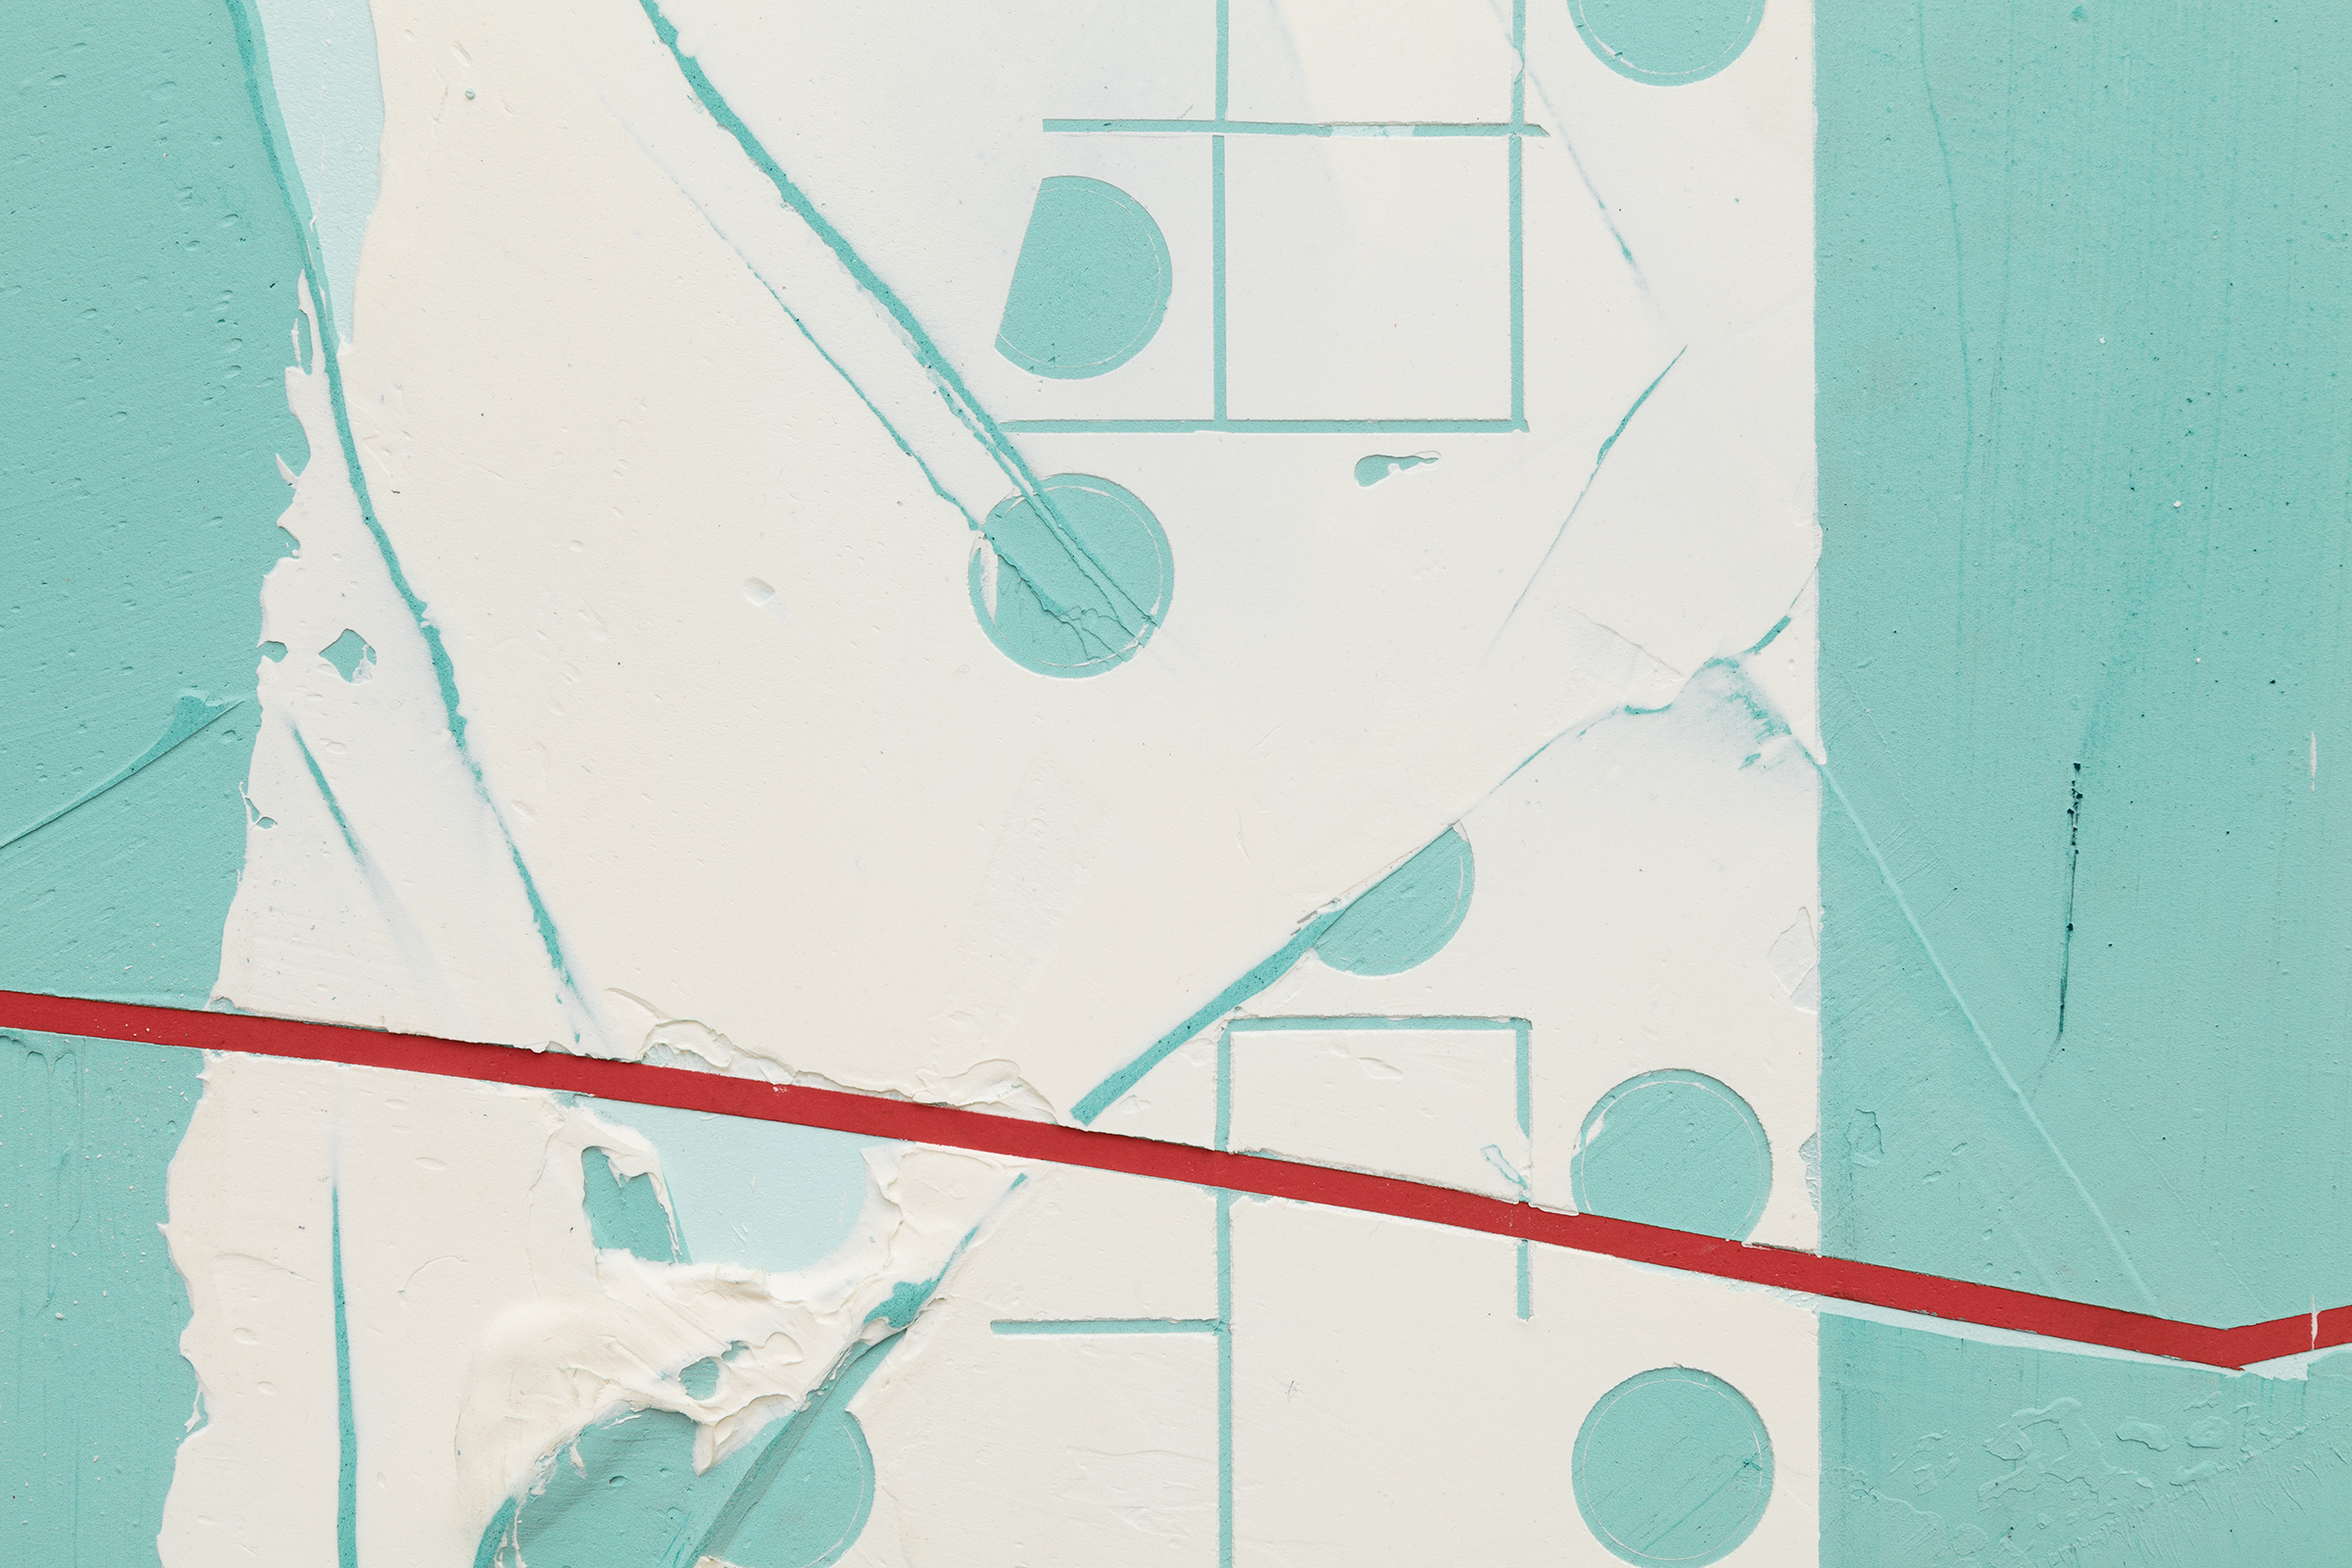 Nicolas Roggy, Untitled  (detail), 2014,primer, modeling paste, pigment,acrylic paint on PVC,87 x 93.7 x 1 in